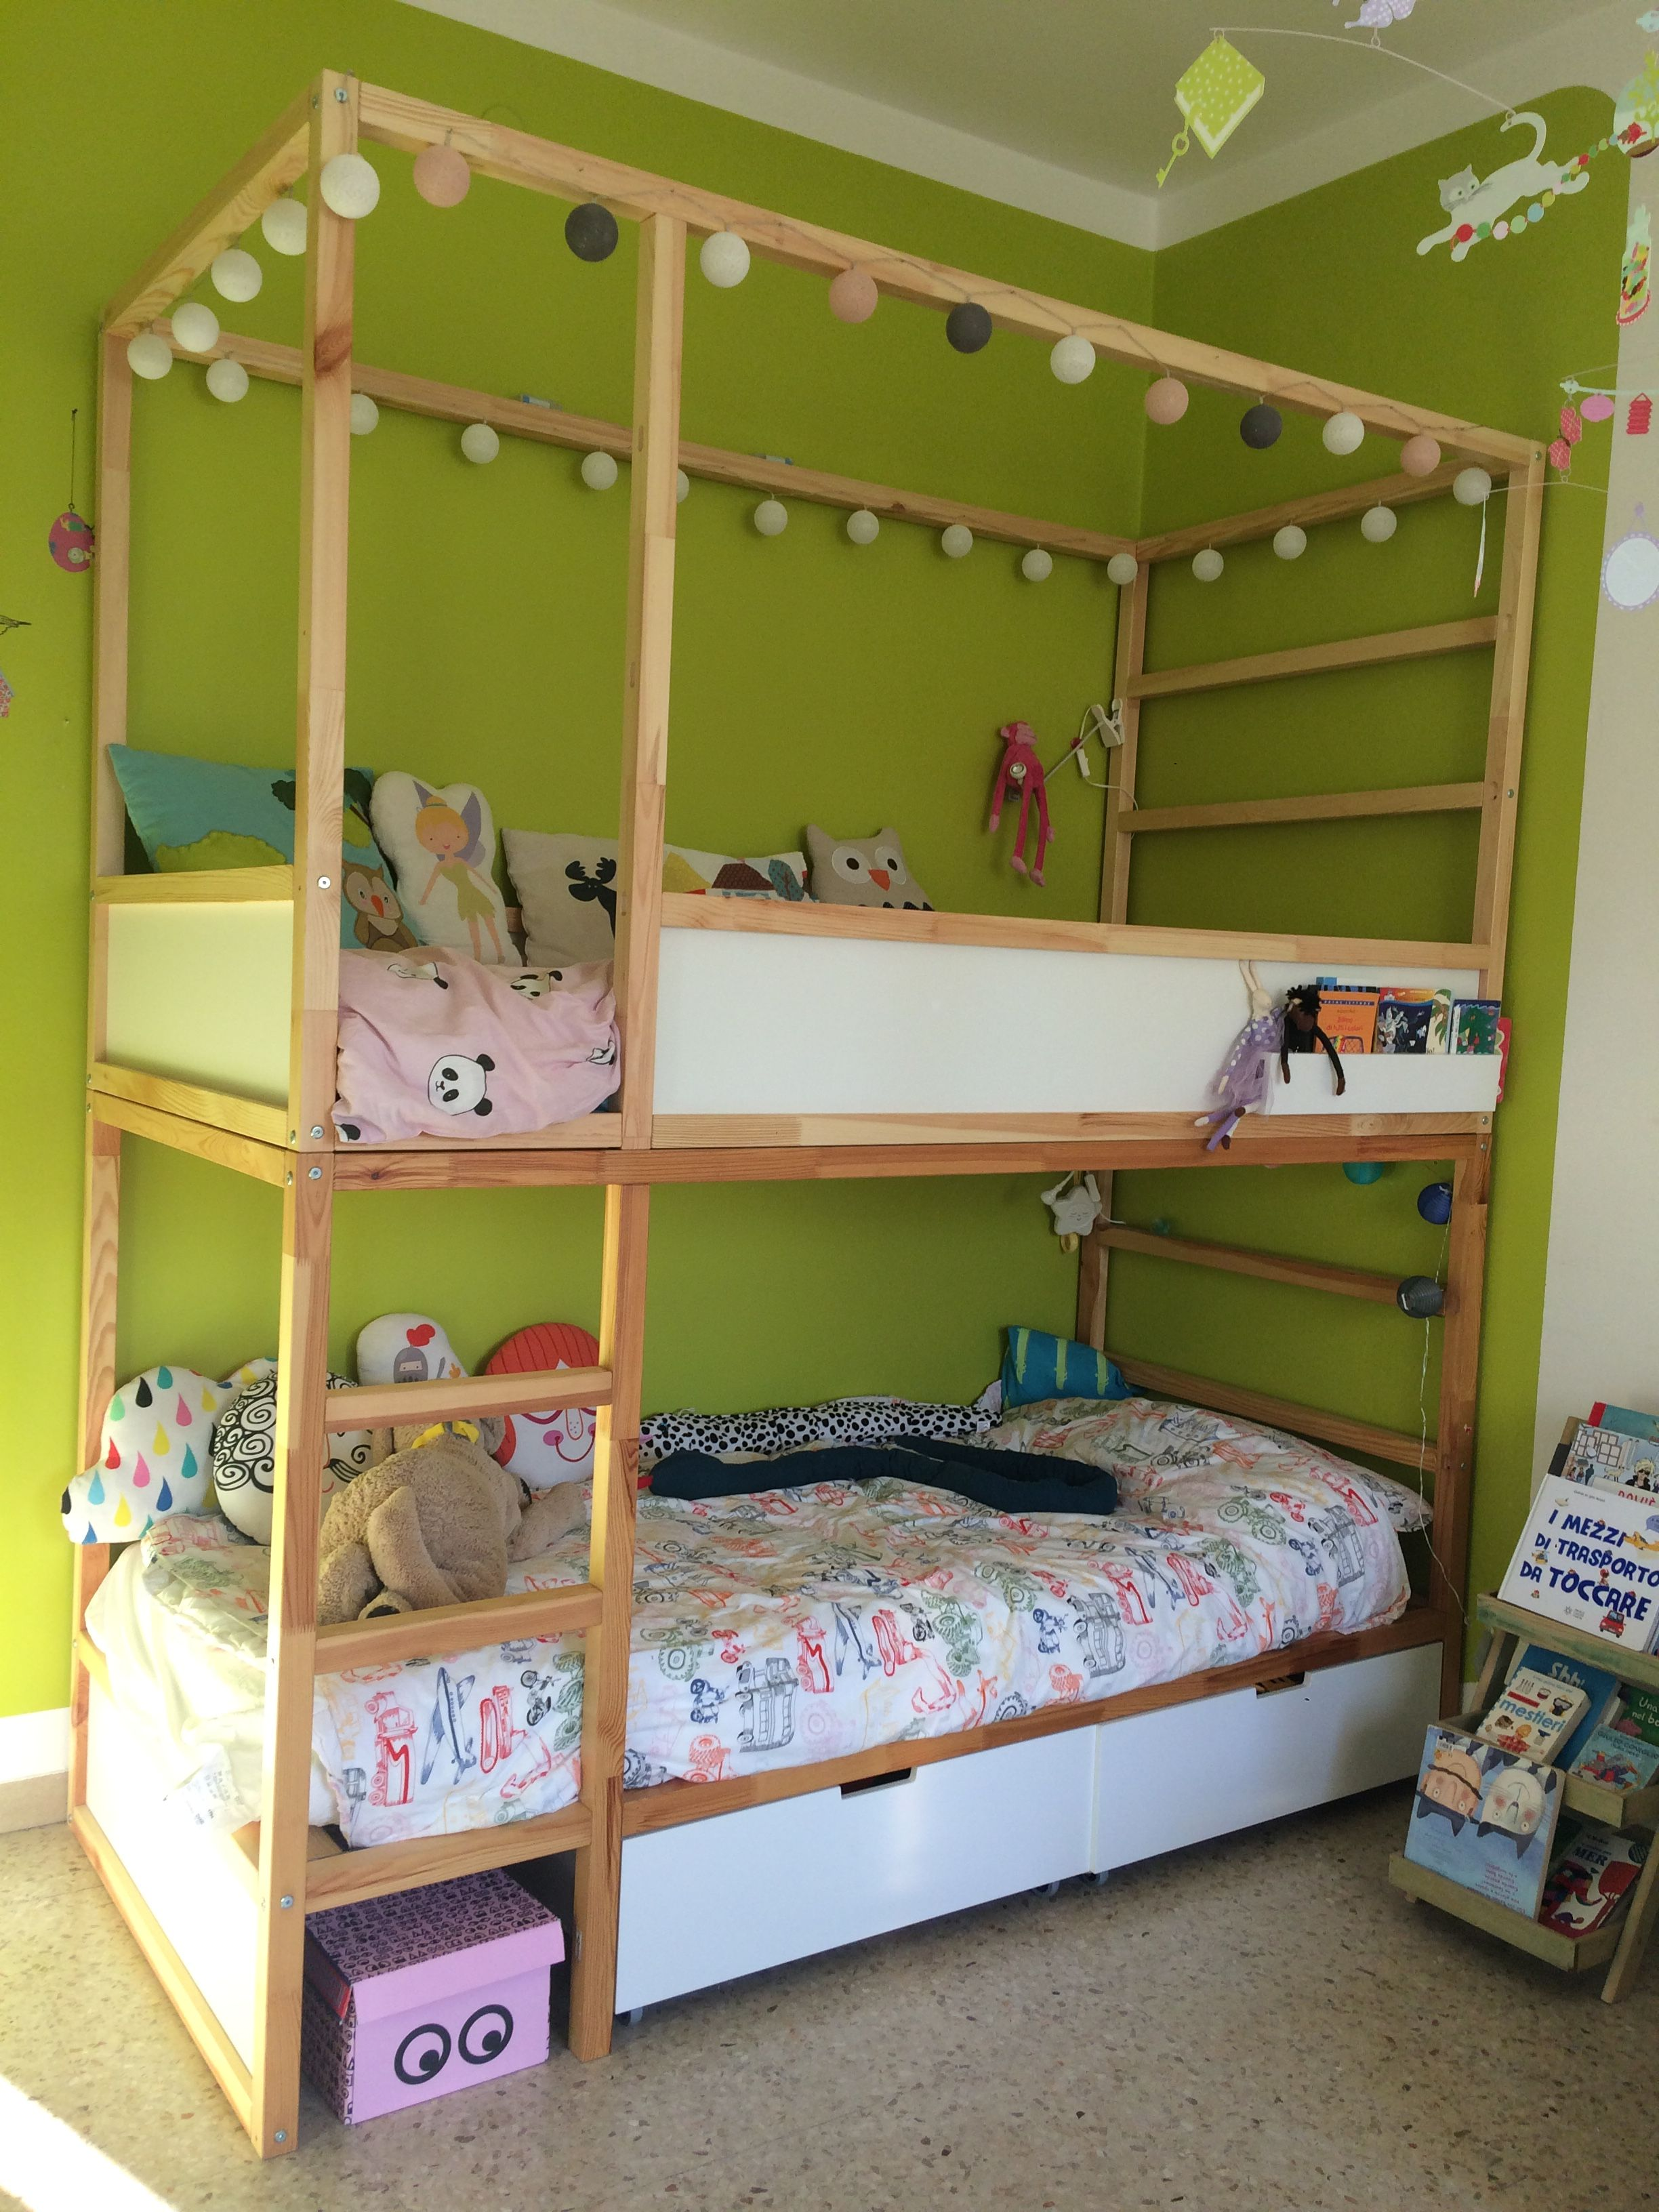 IKEA Kura bunk bed with drawers underneath